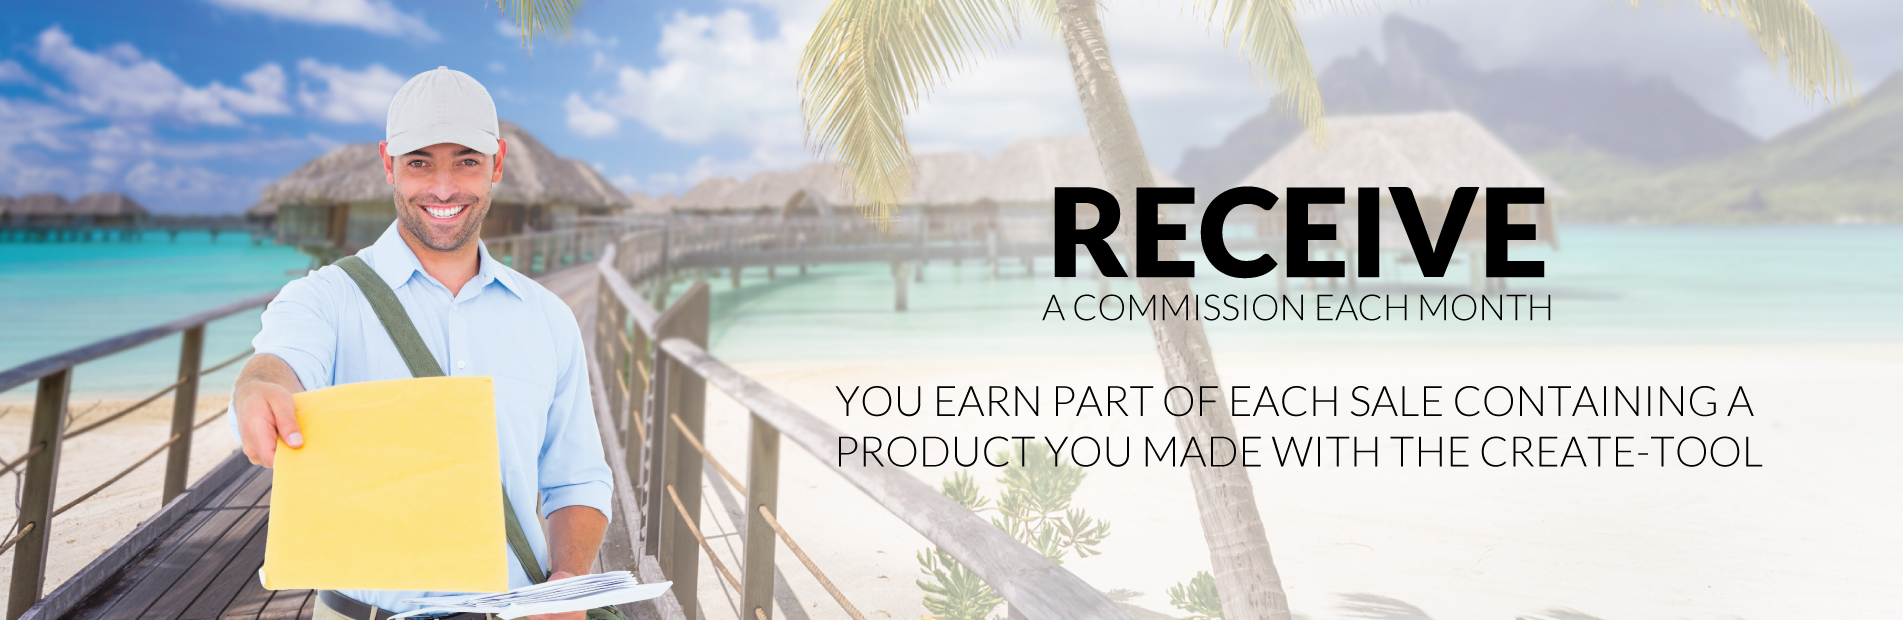 Receive a comission each month. You earn part of each sale containing a product you made with the create-tool.